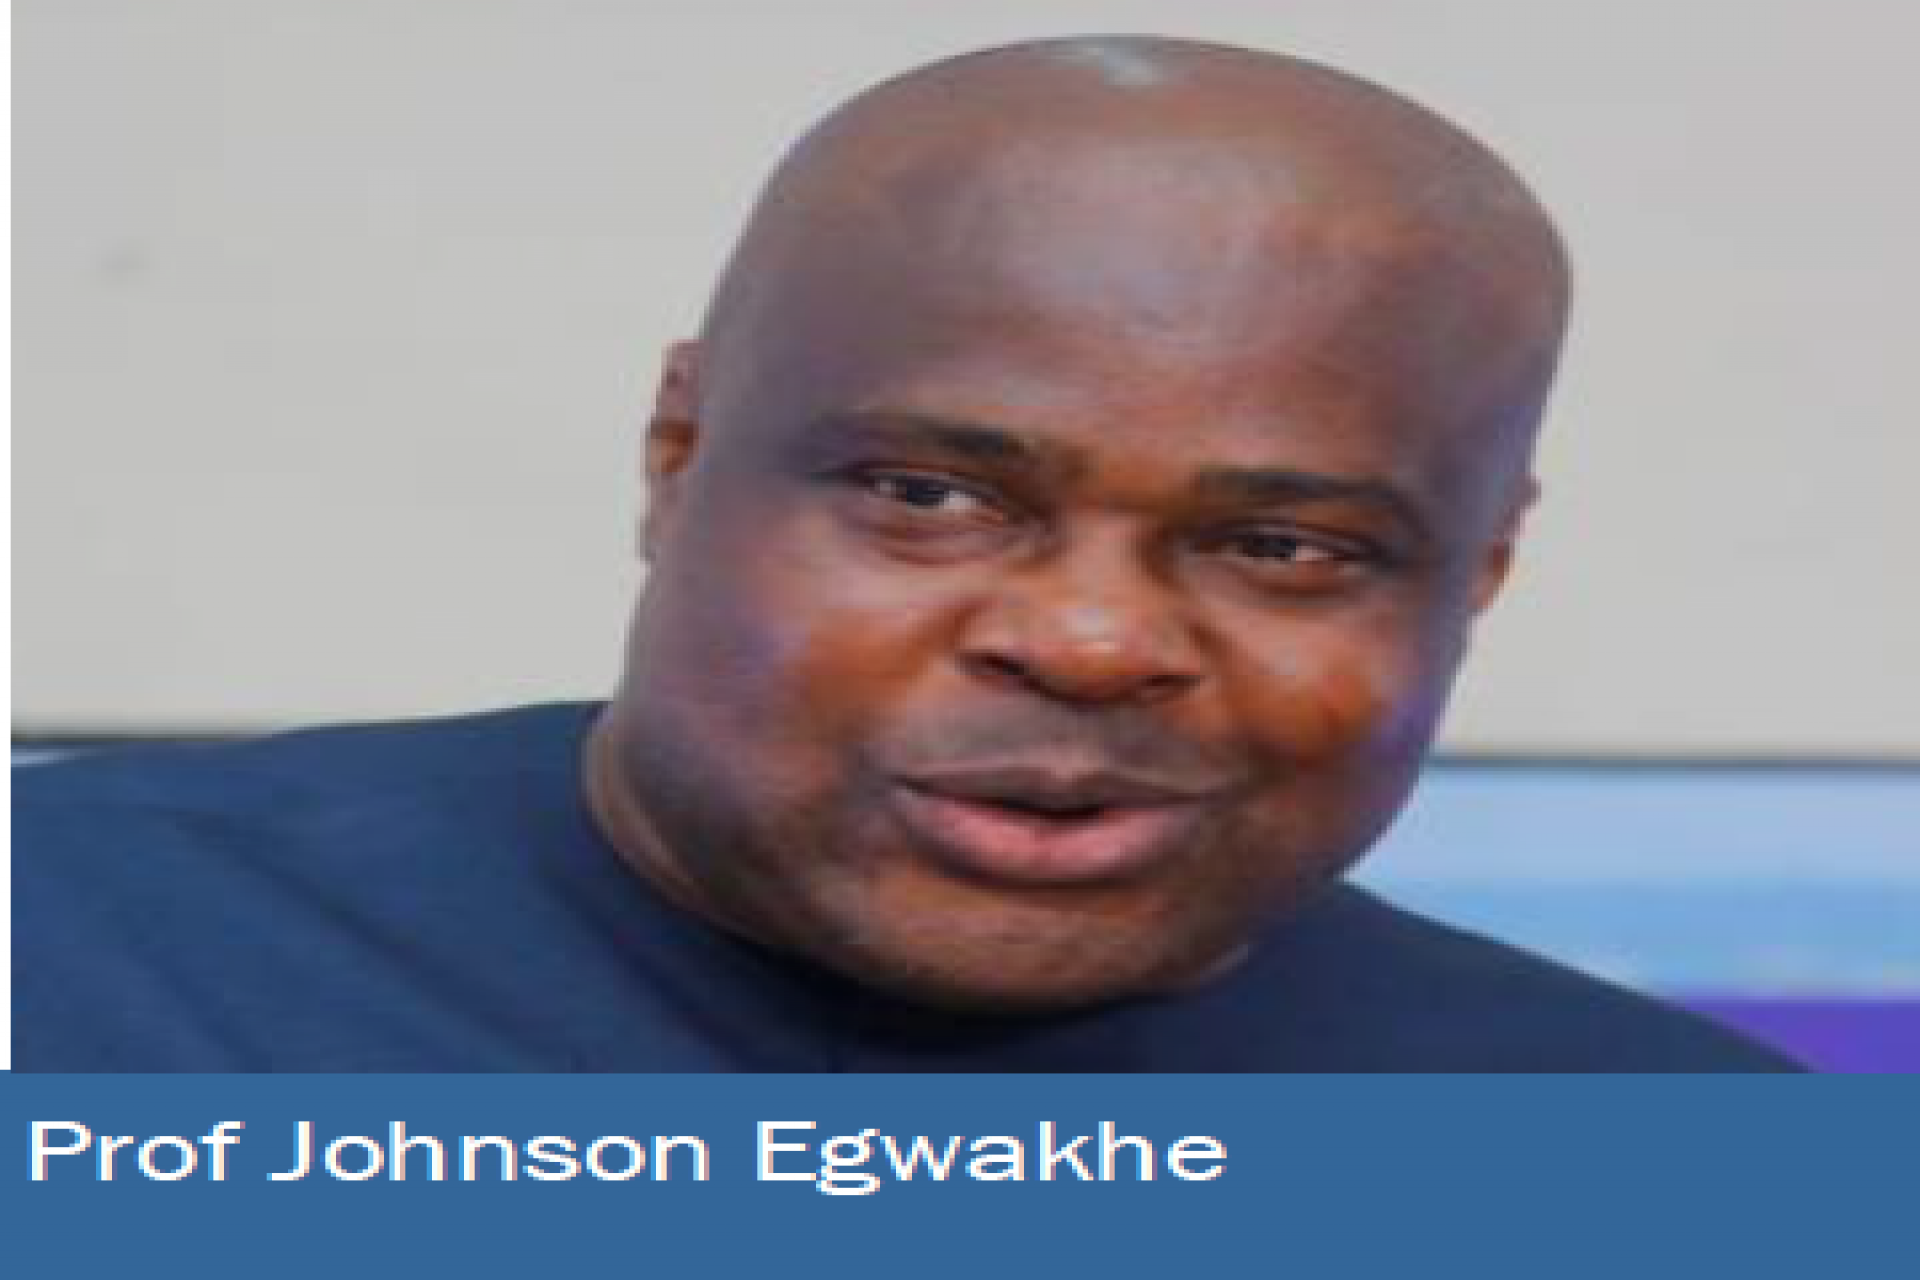 https://static.babcock.edu.ng/Professor Johnson Egwakhe